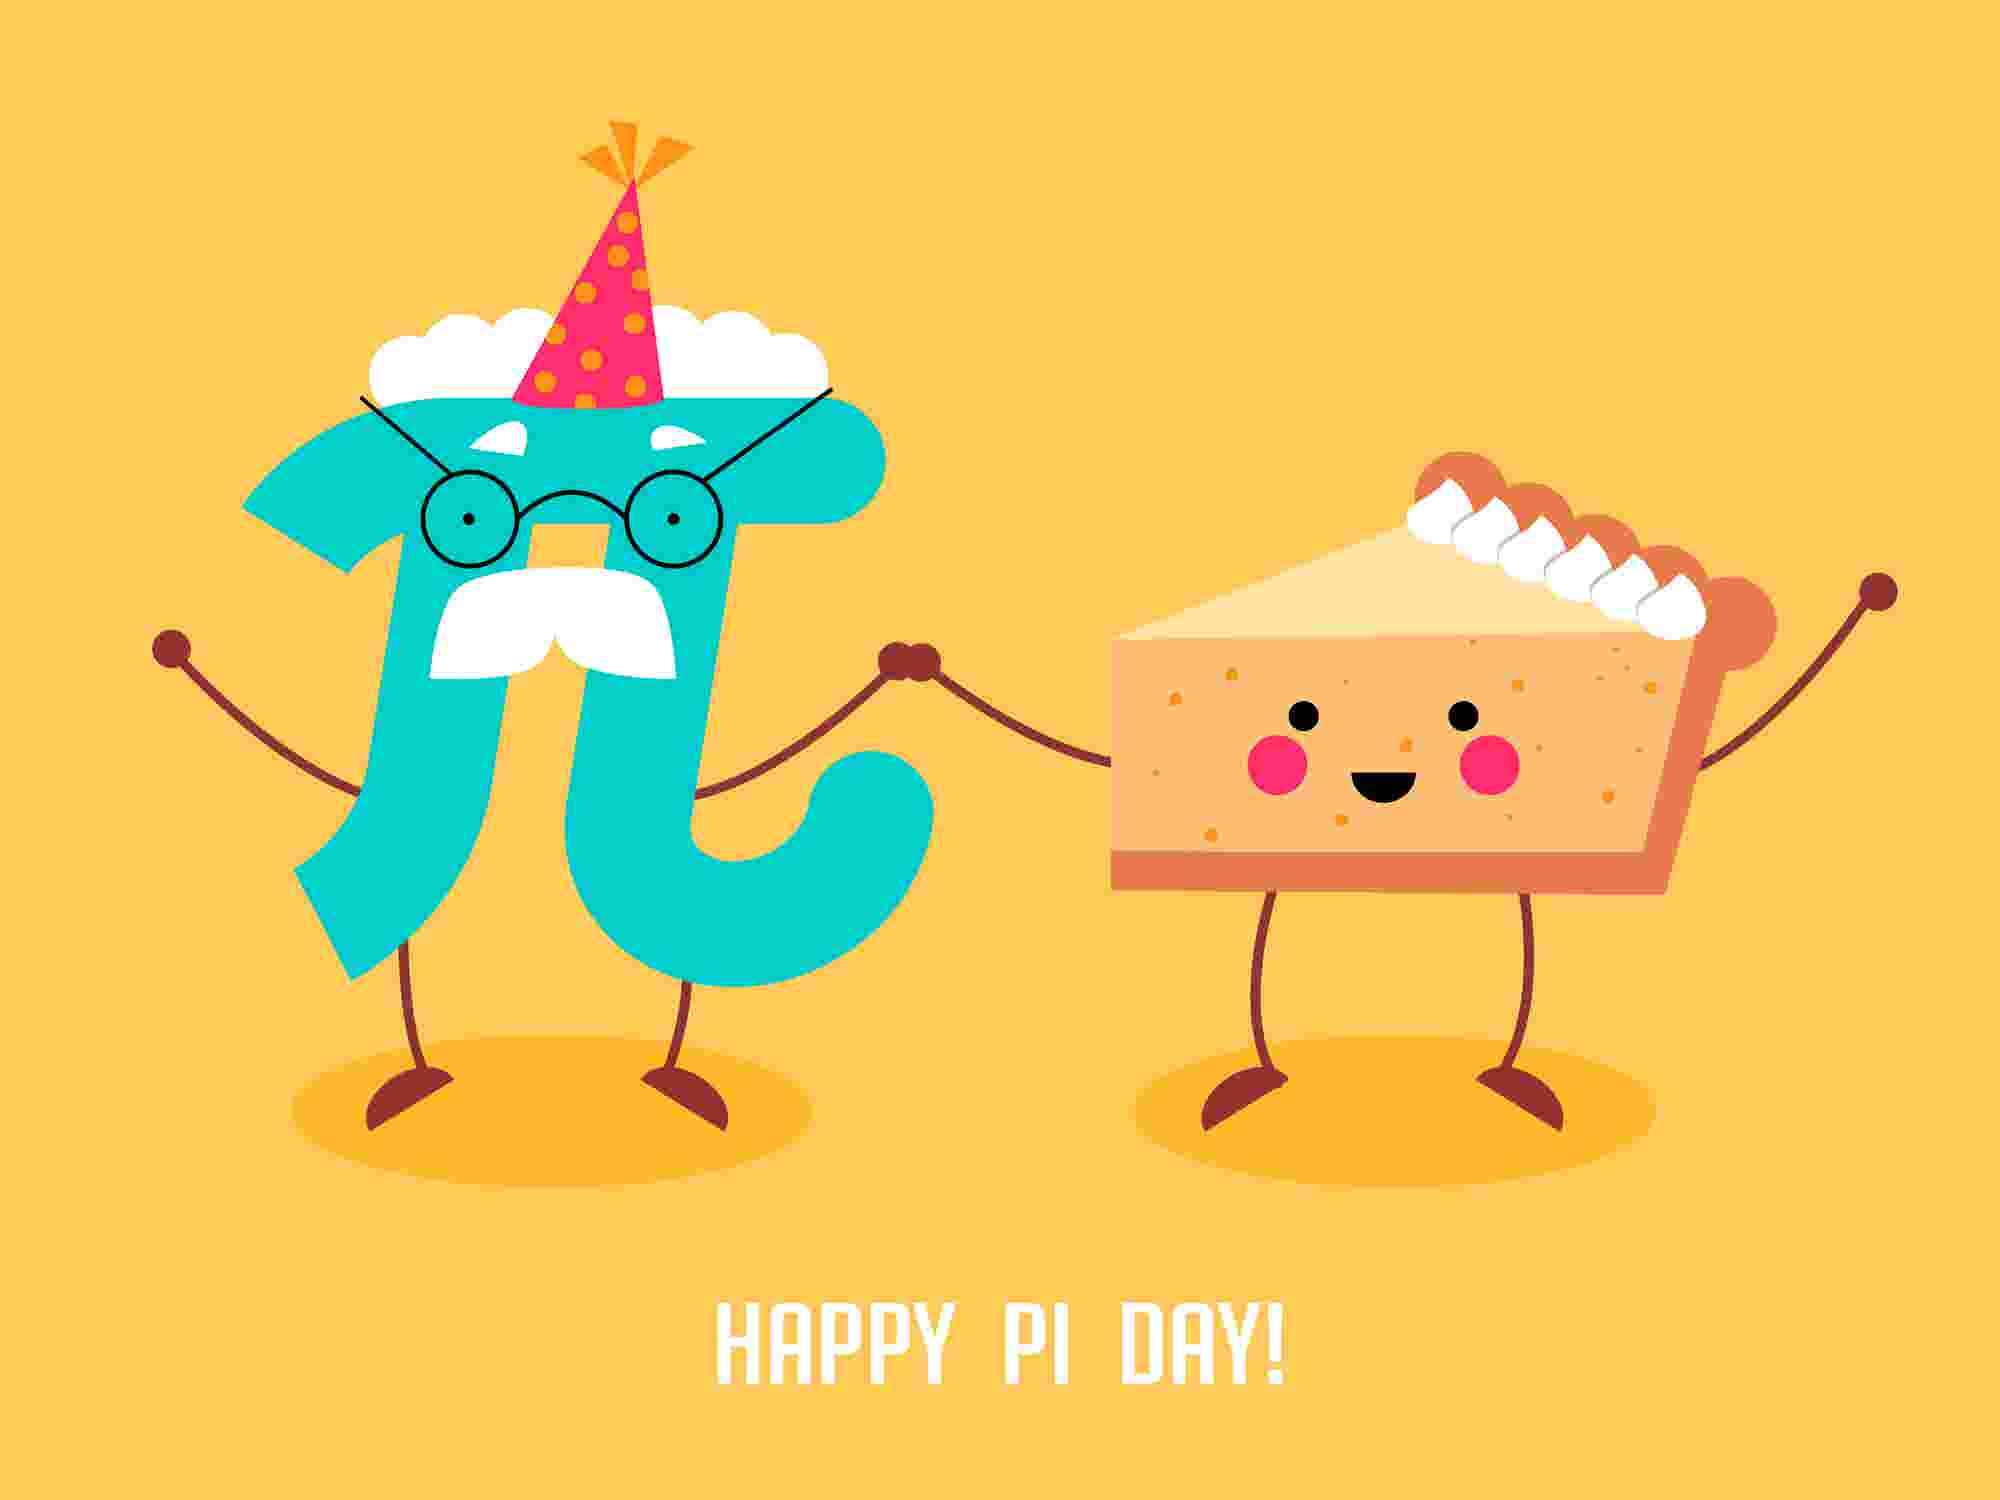 10 surprising facts about Pi Day (March 14)